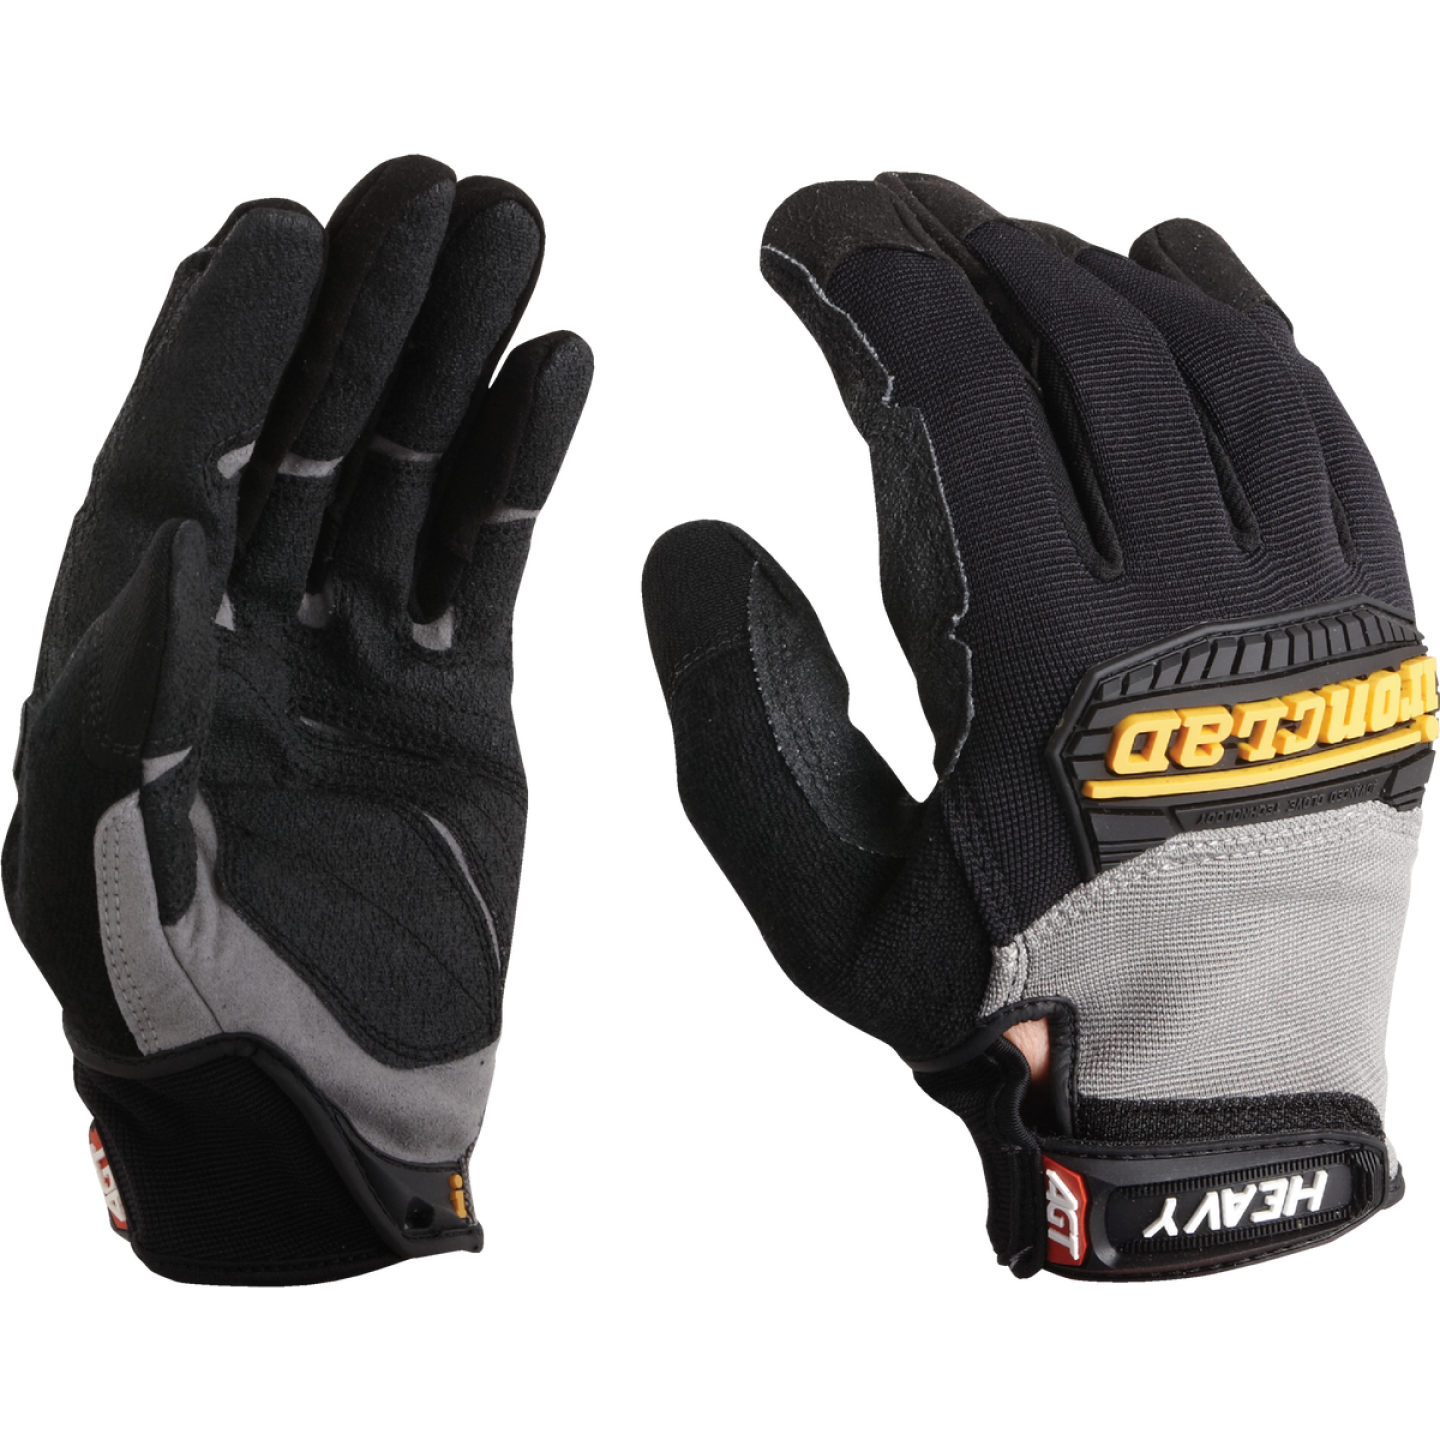 Ironclad Heavy Utility Men'sLarge Synthetic Leather High Performance Glove Image 2